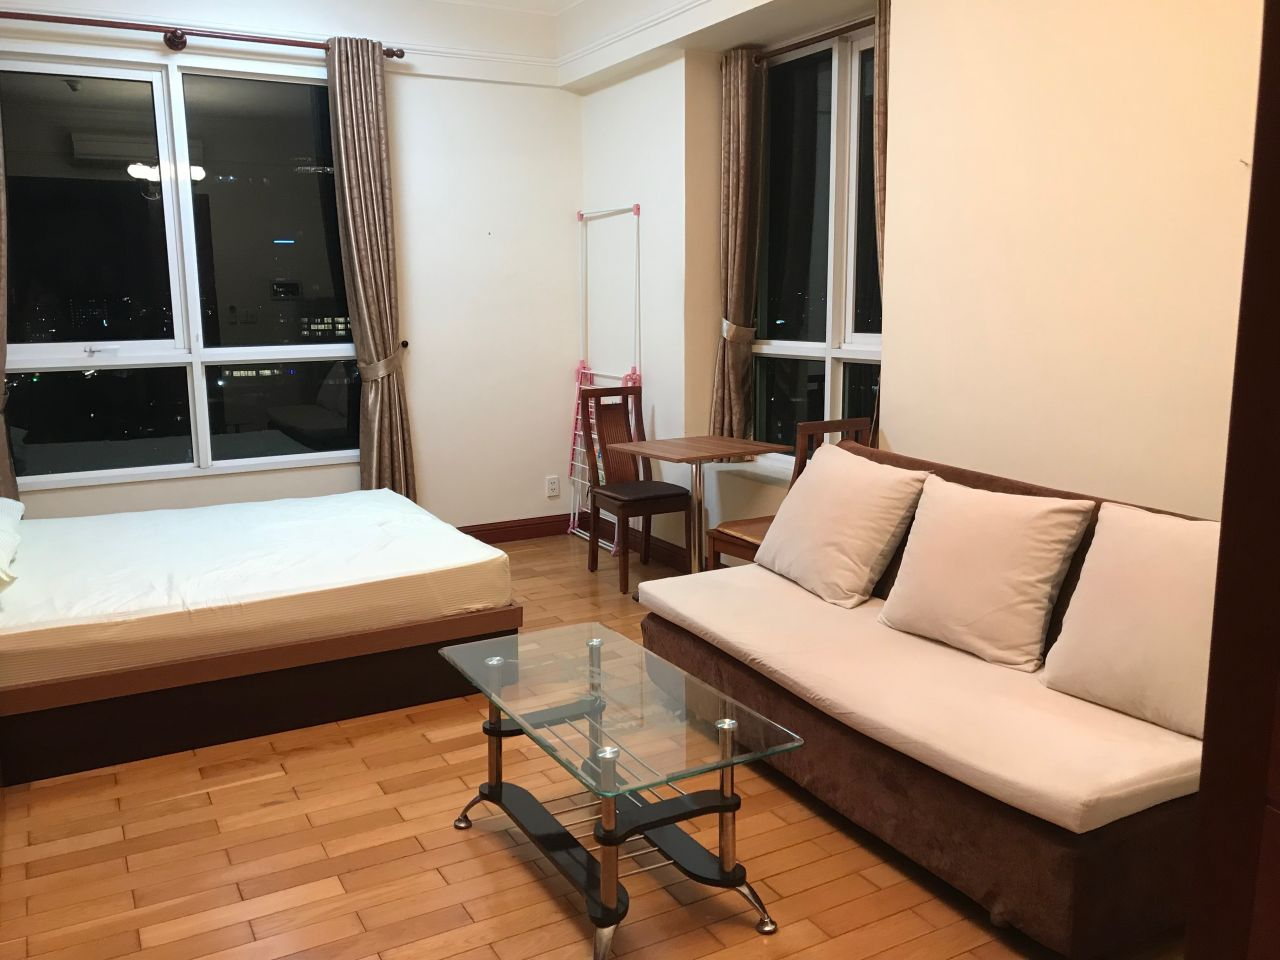 Manor building apartment for rent in high floor studio - 1 bedroom or studio apartments for rent ...